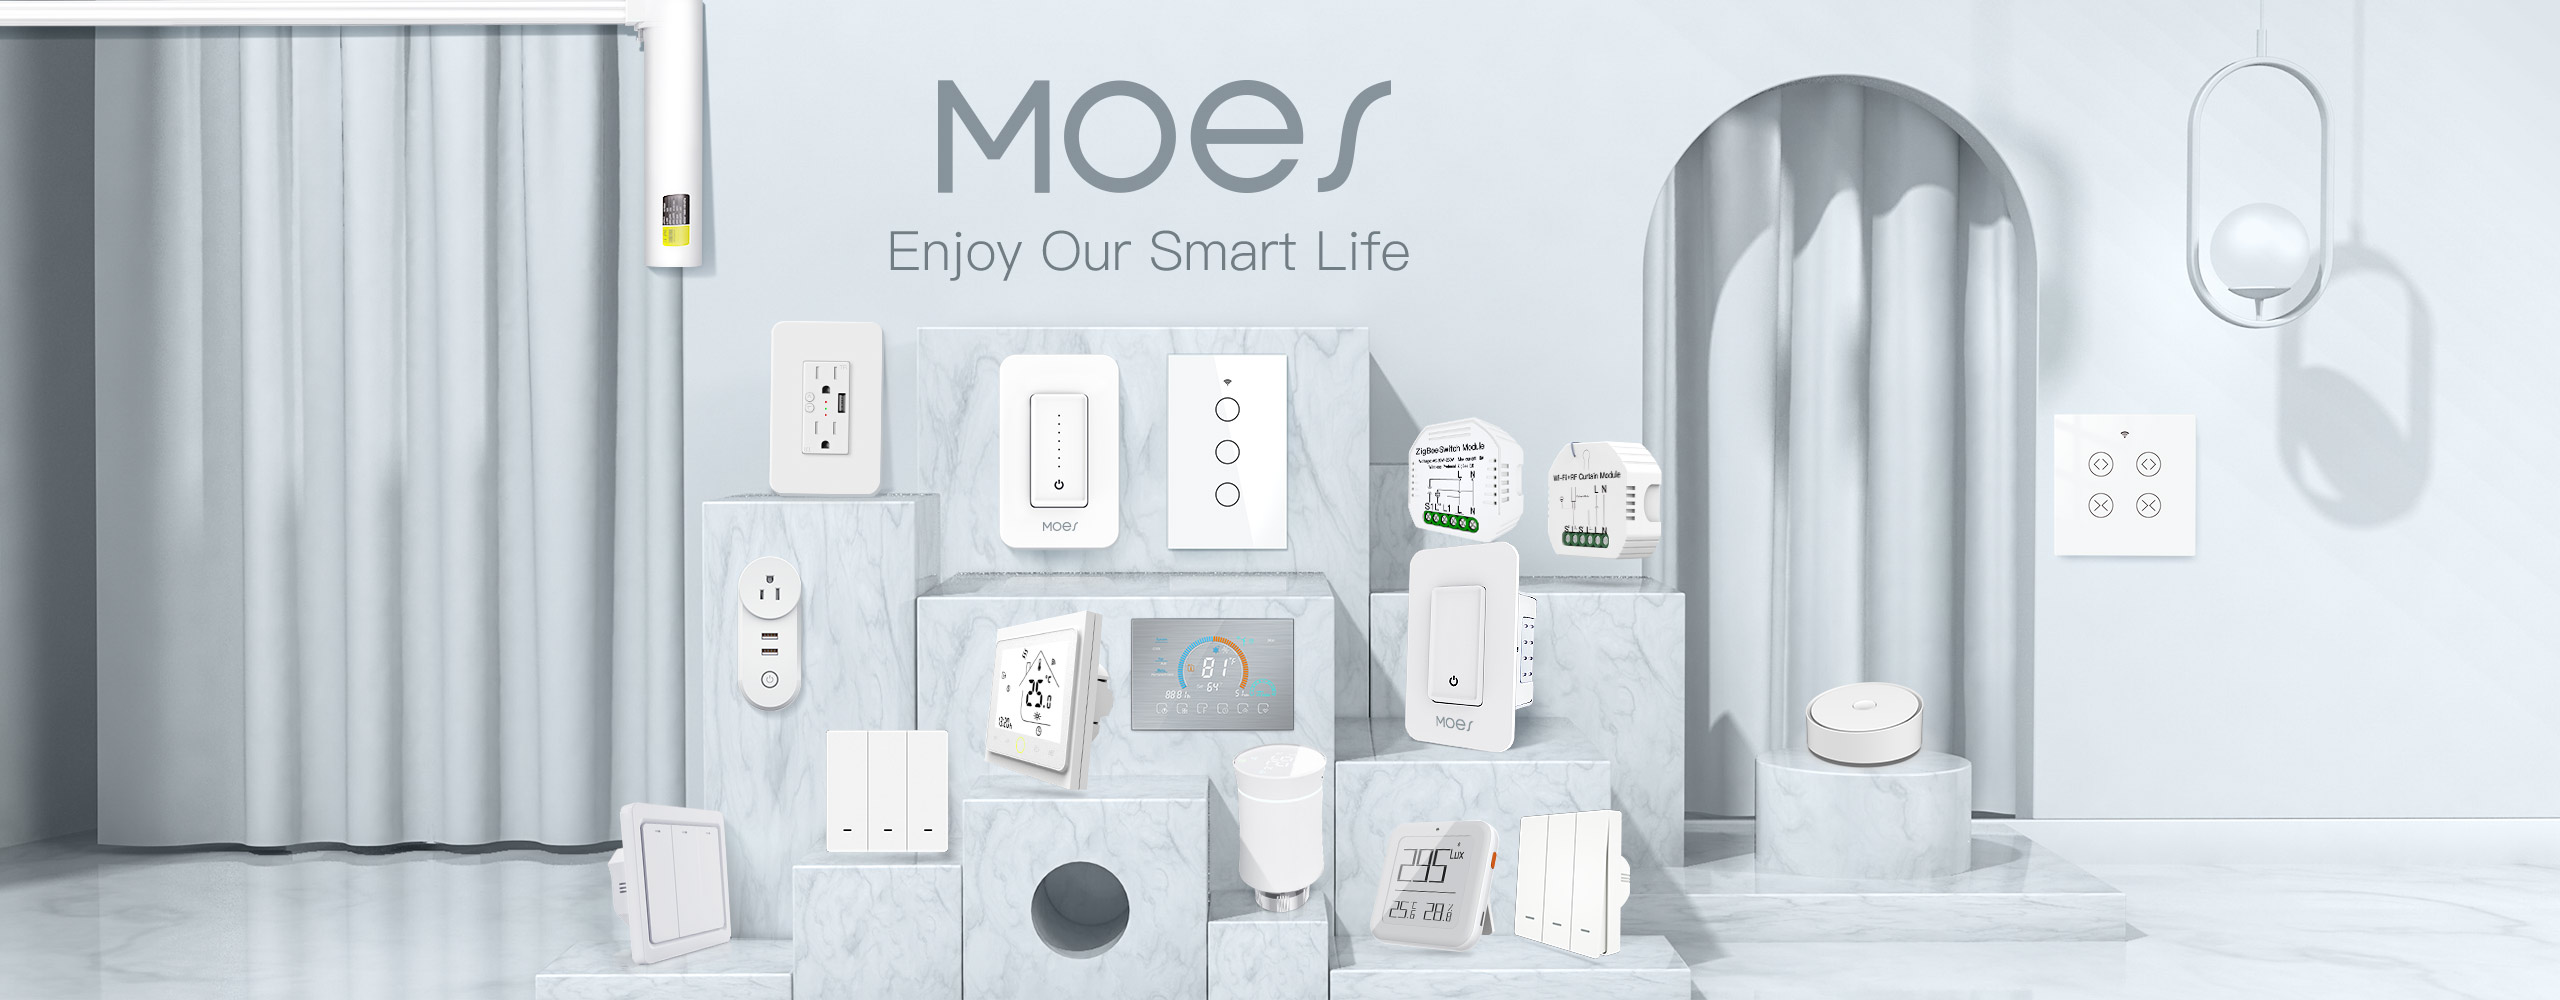 Moes is a brand that devotes ourselves to the design and production of smart home devices for a whole-house intelligent linkage.